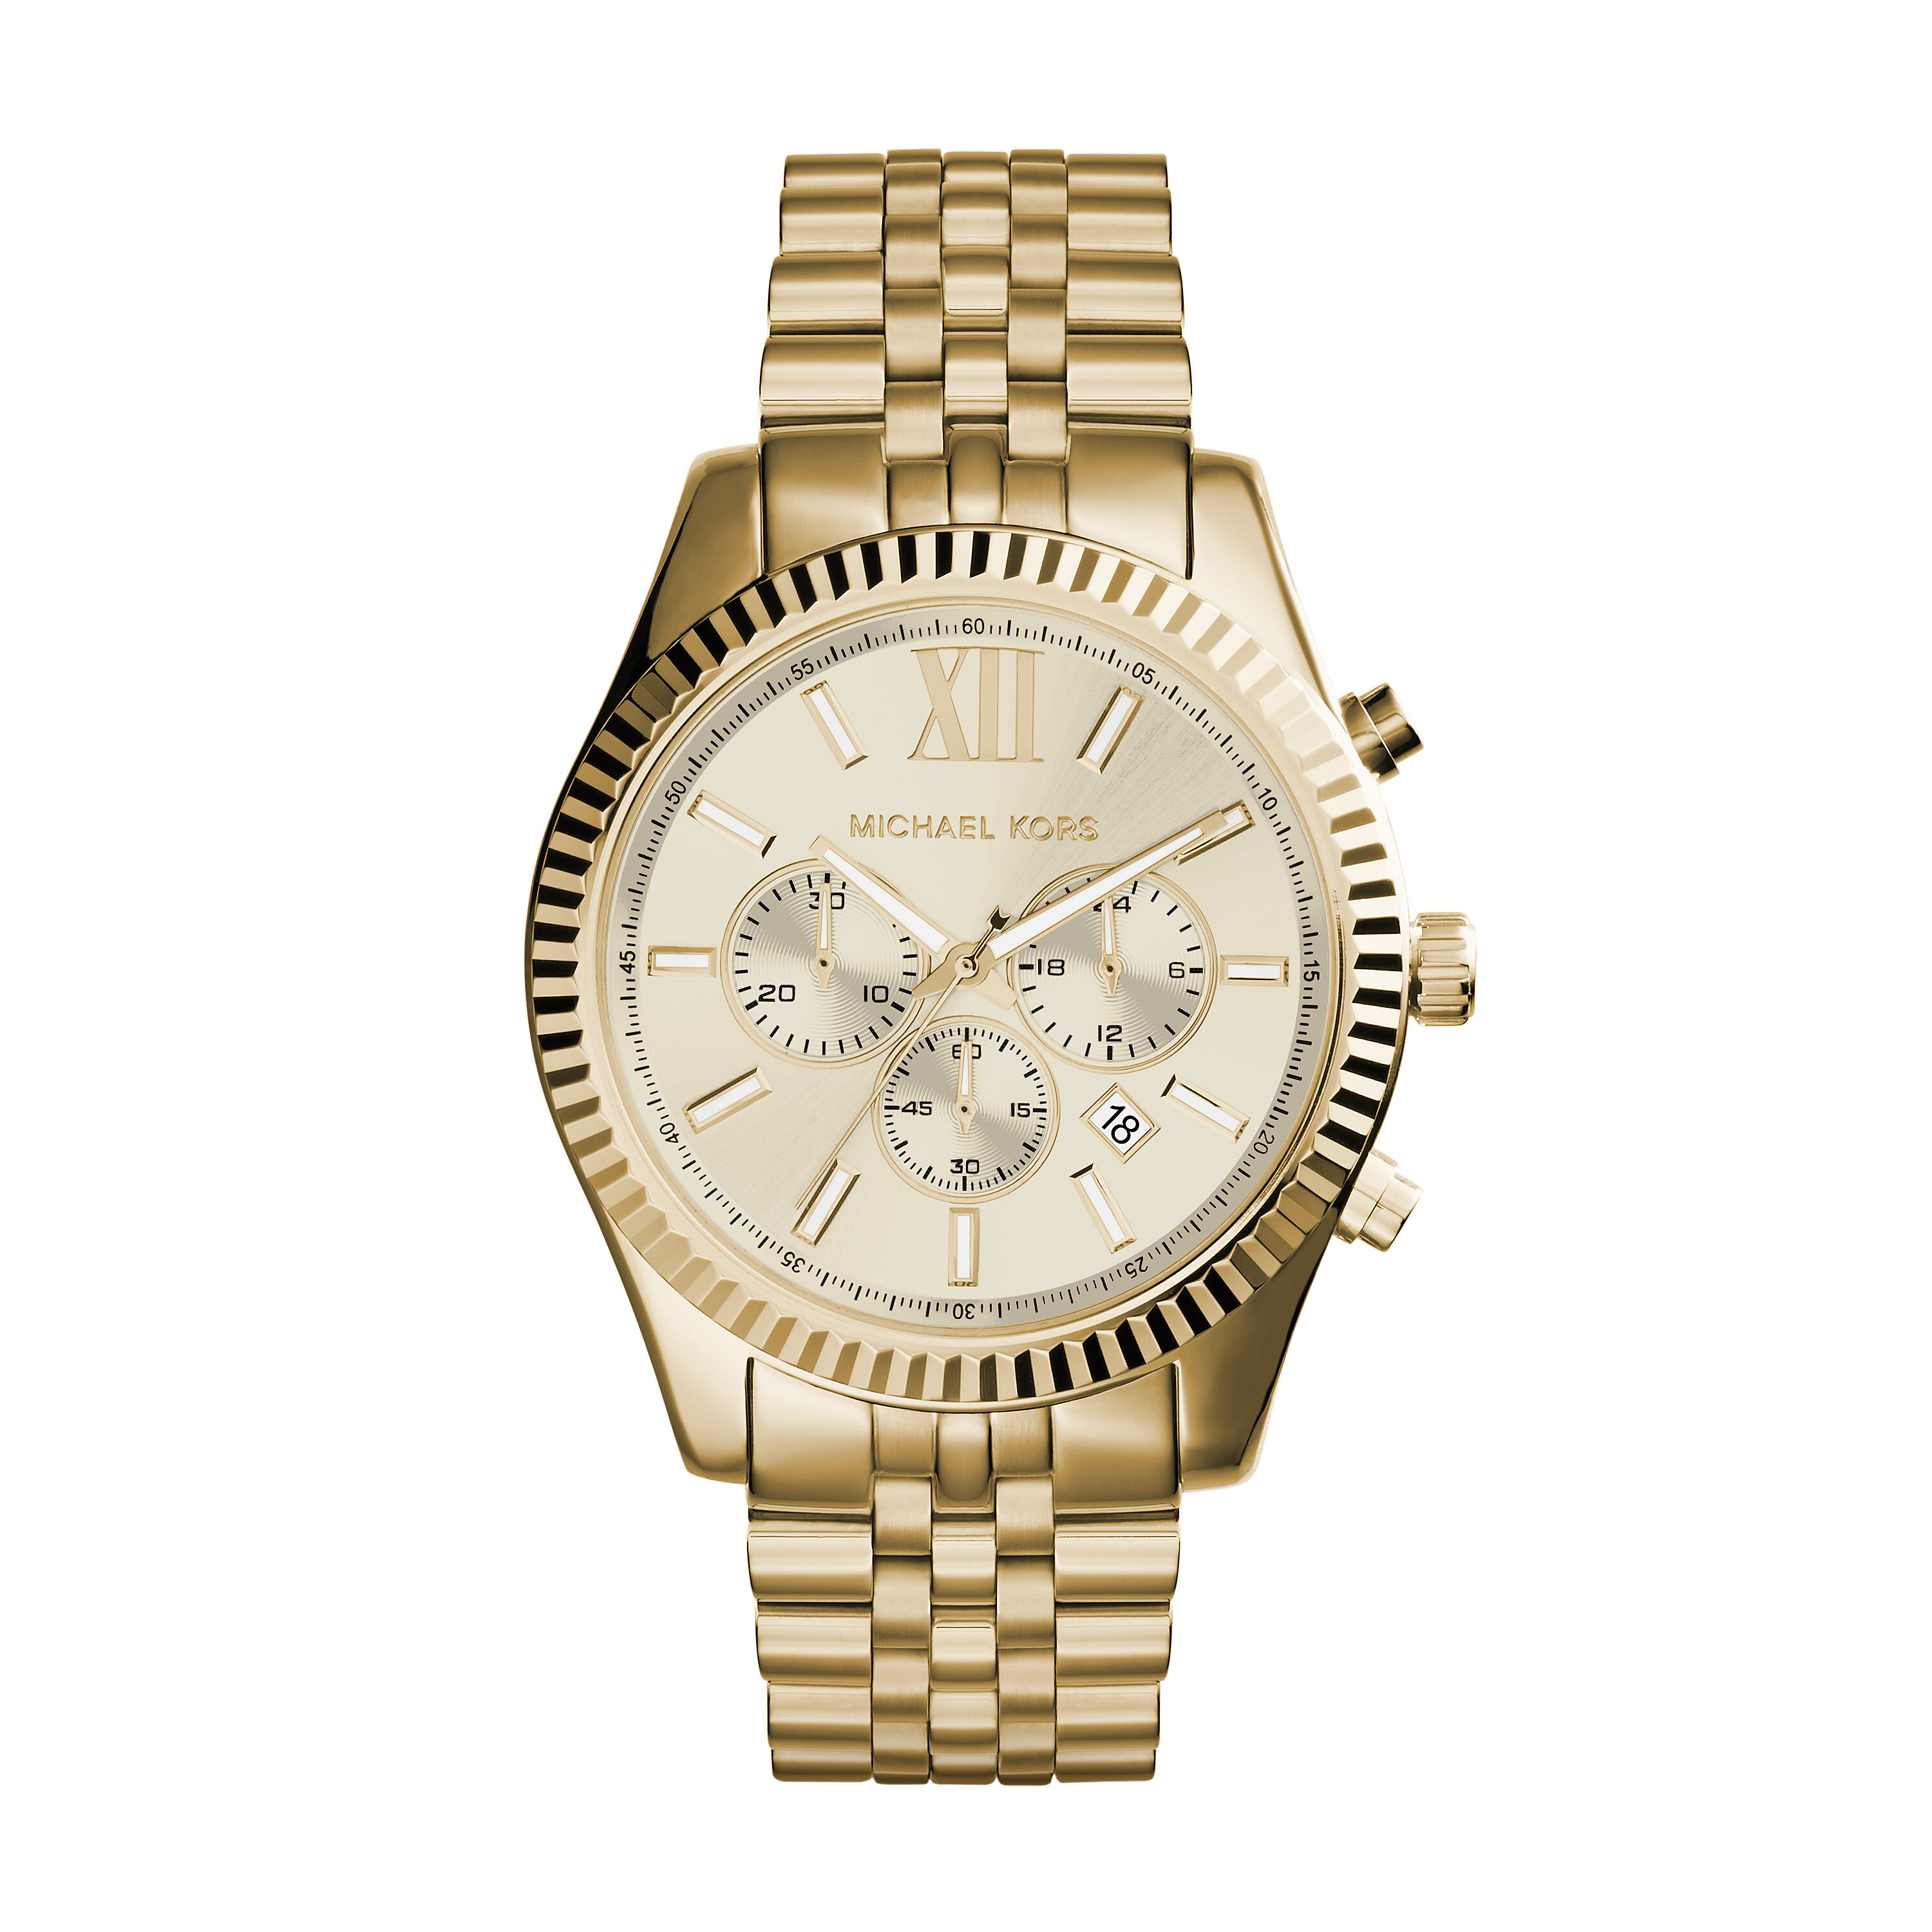 Michael Kors MK8281 - Men's Lexington Chronograph